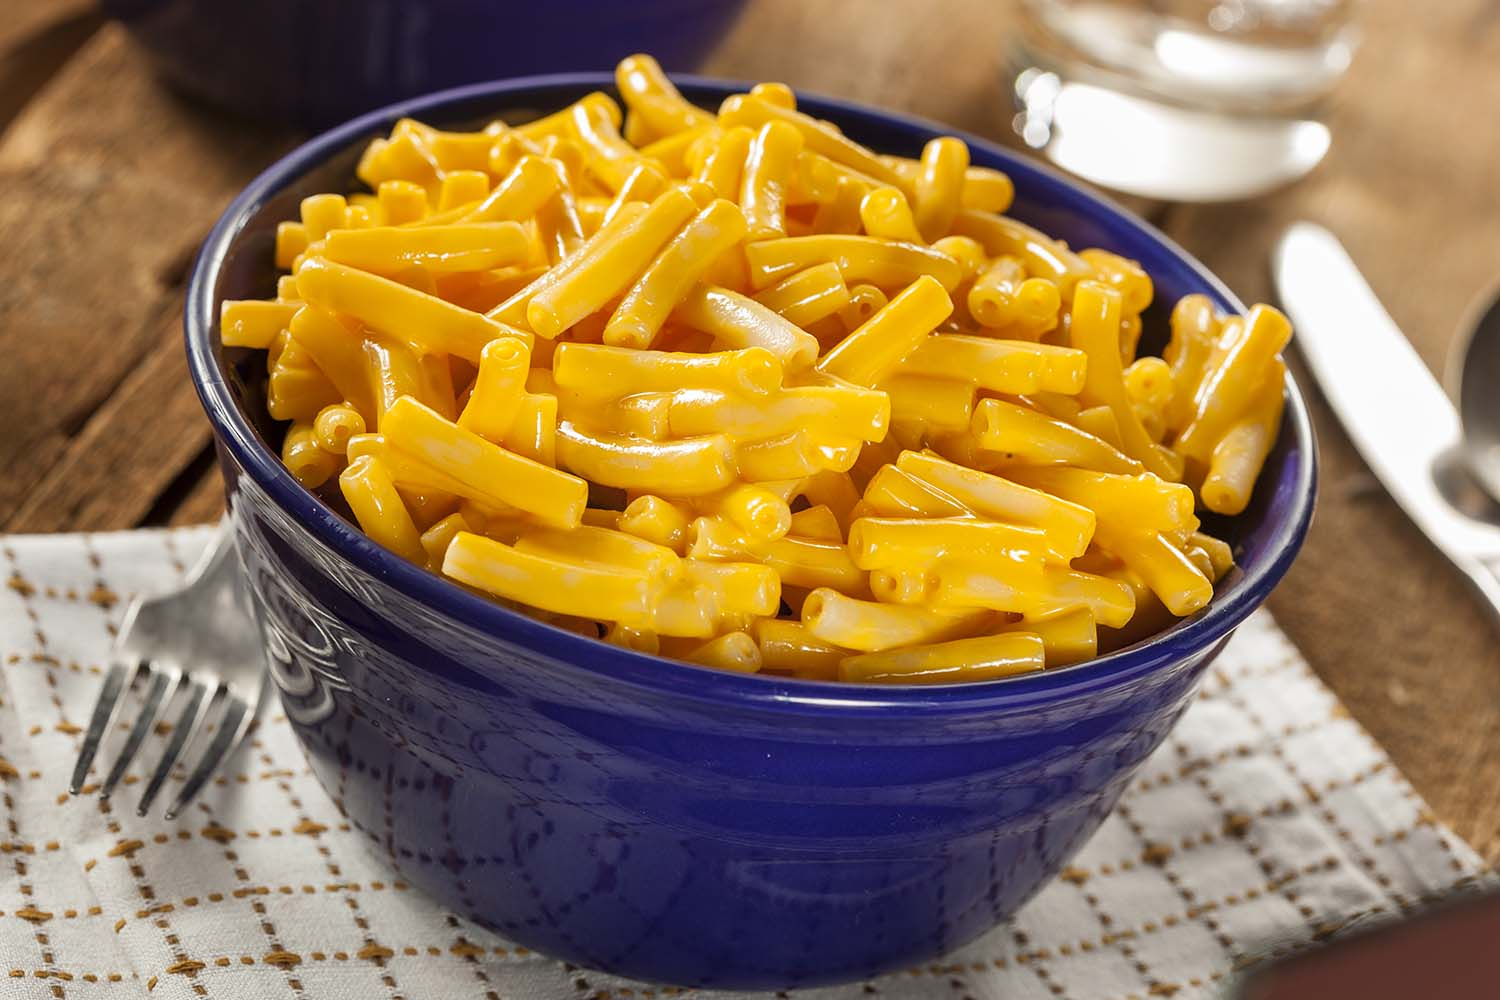 Mac-n-cheese probably isn't more toxic than other foods